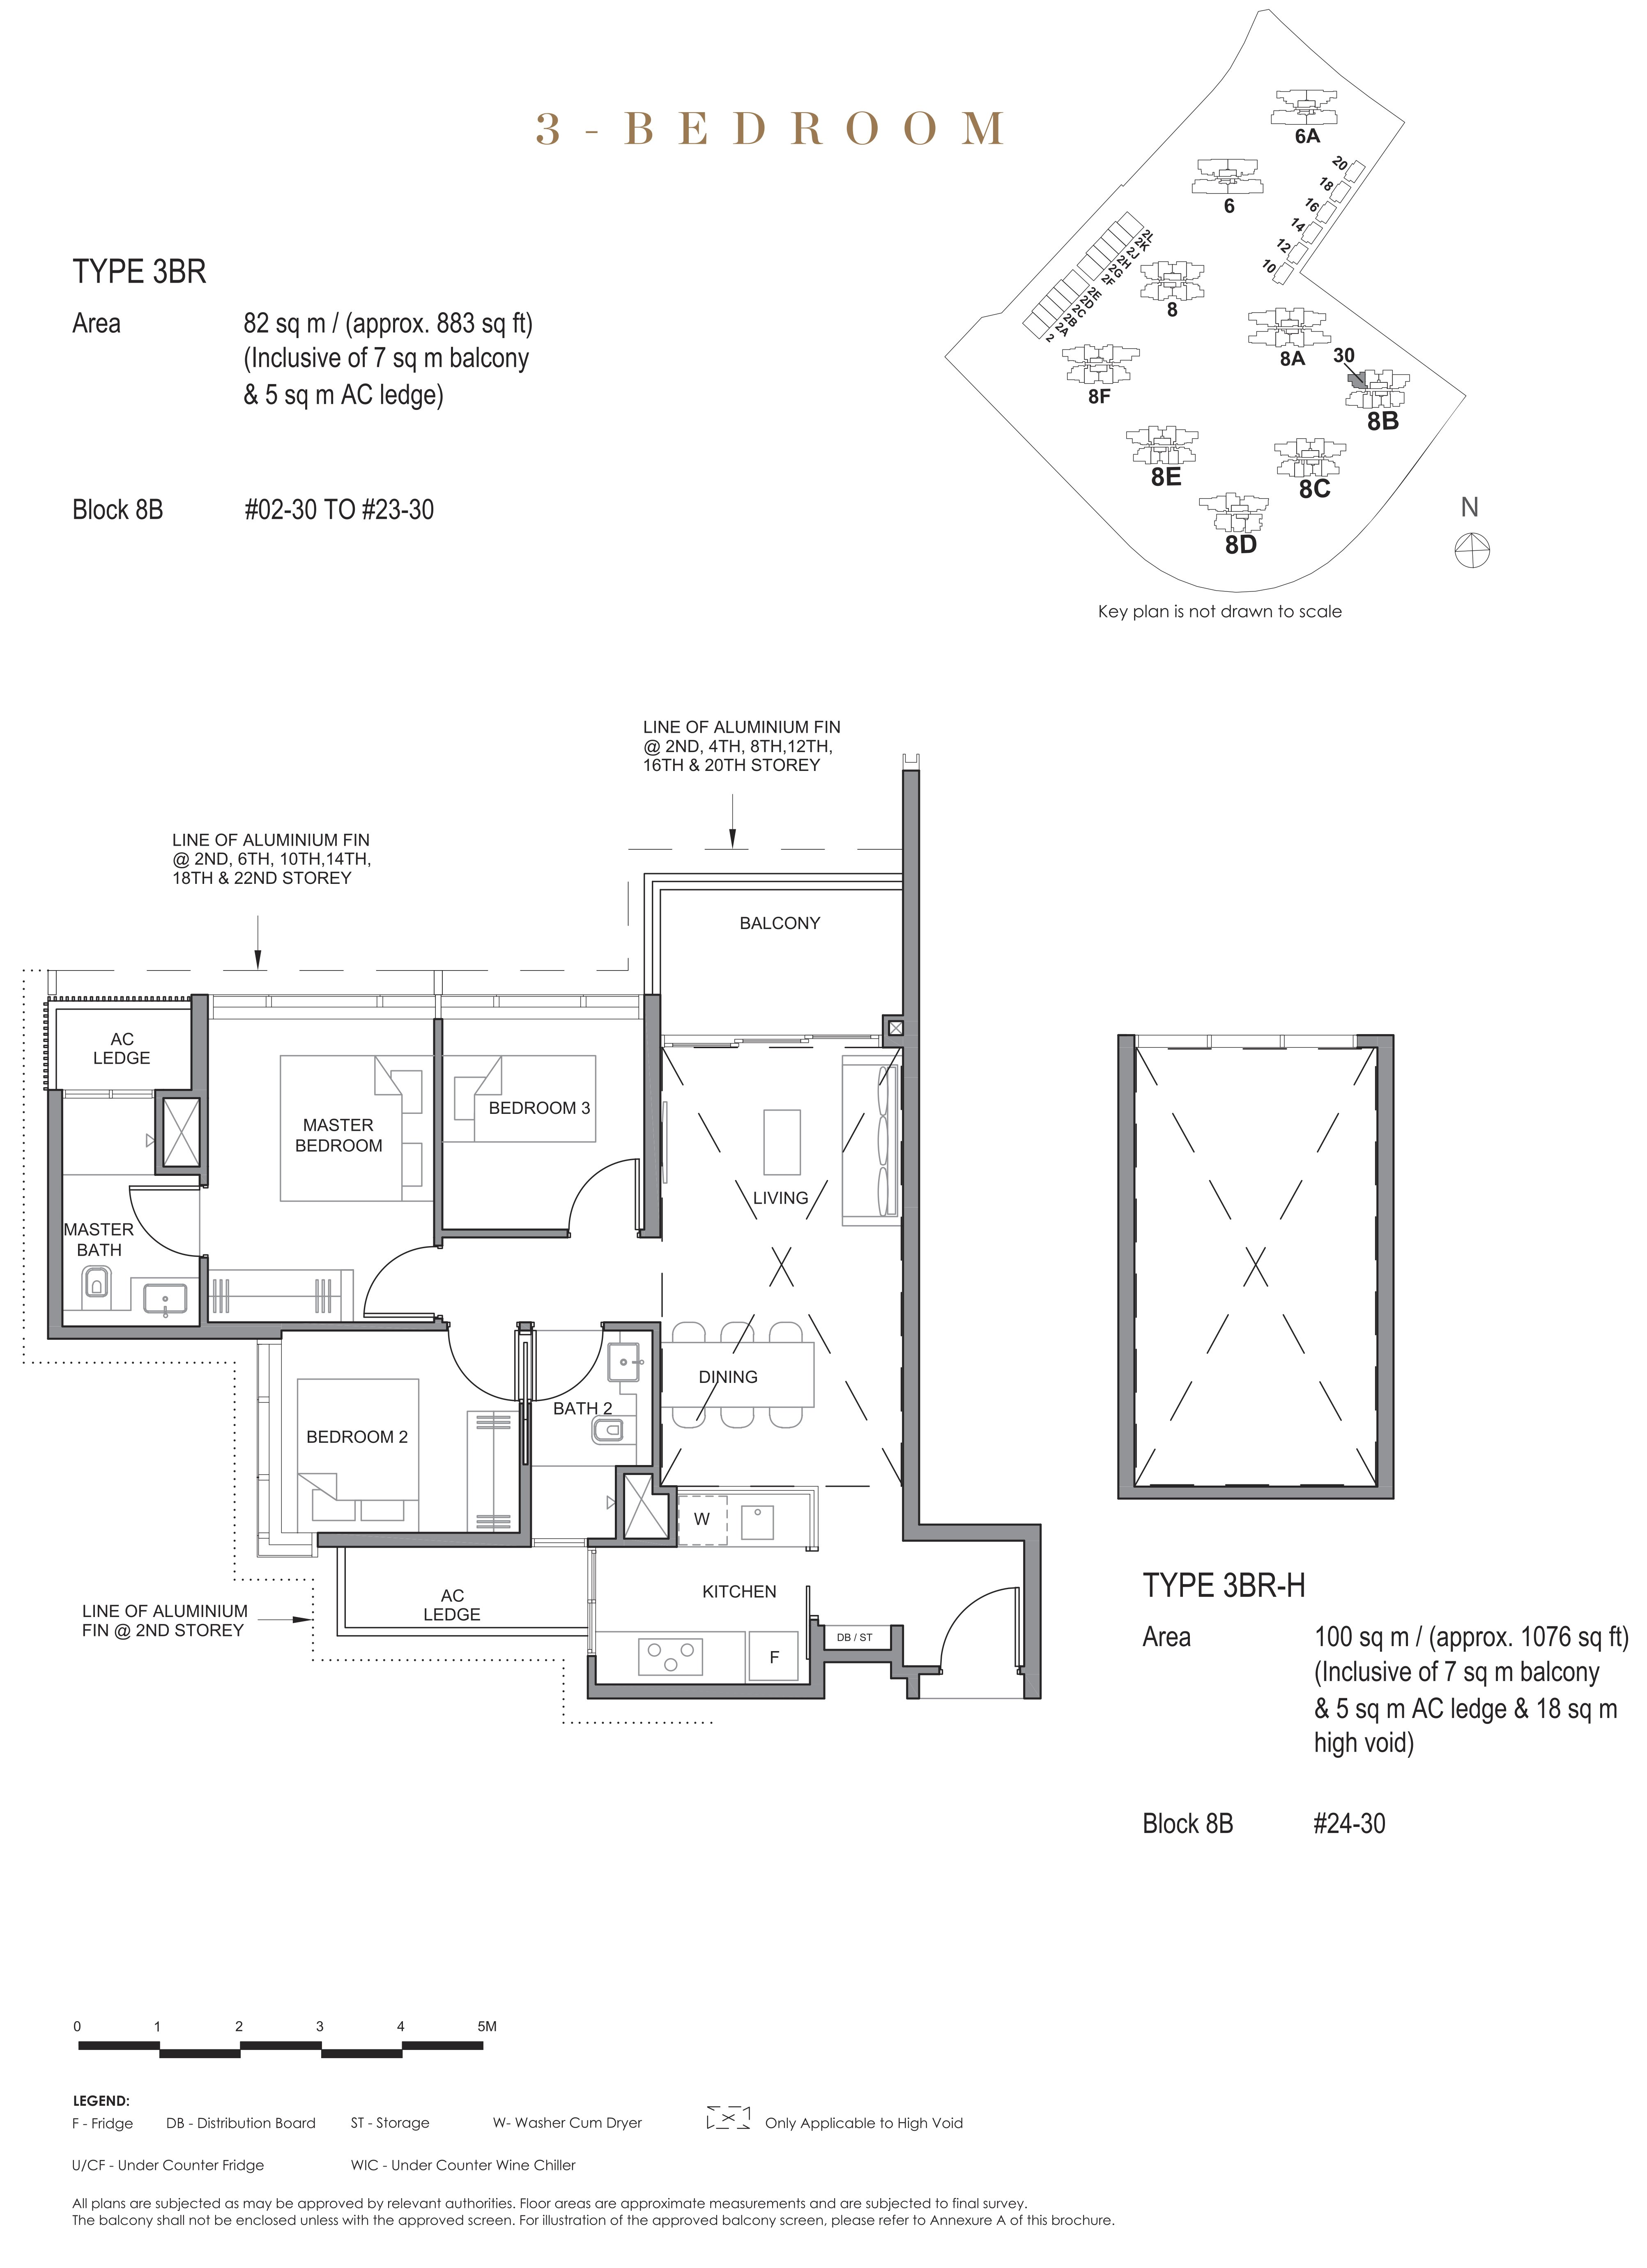 Parc Clematis 锦泰门第 contemporary 3 bedroom 3卧房 3 BR